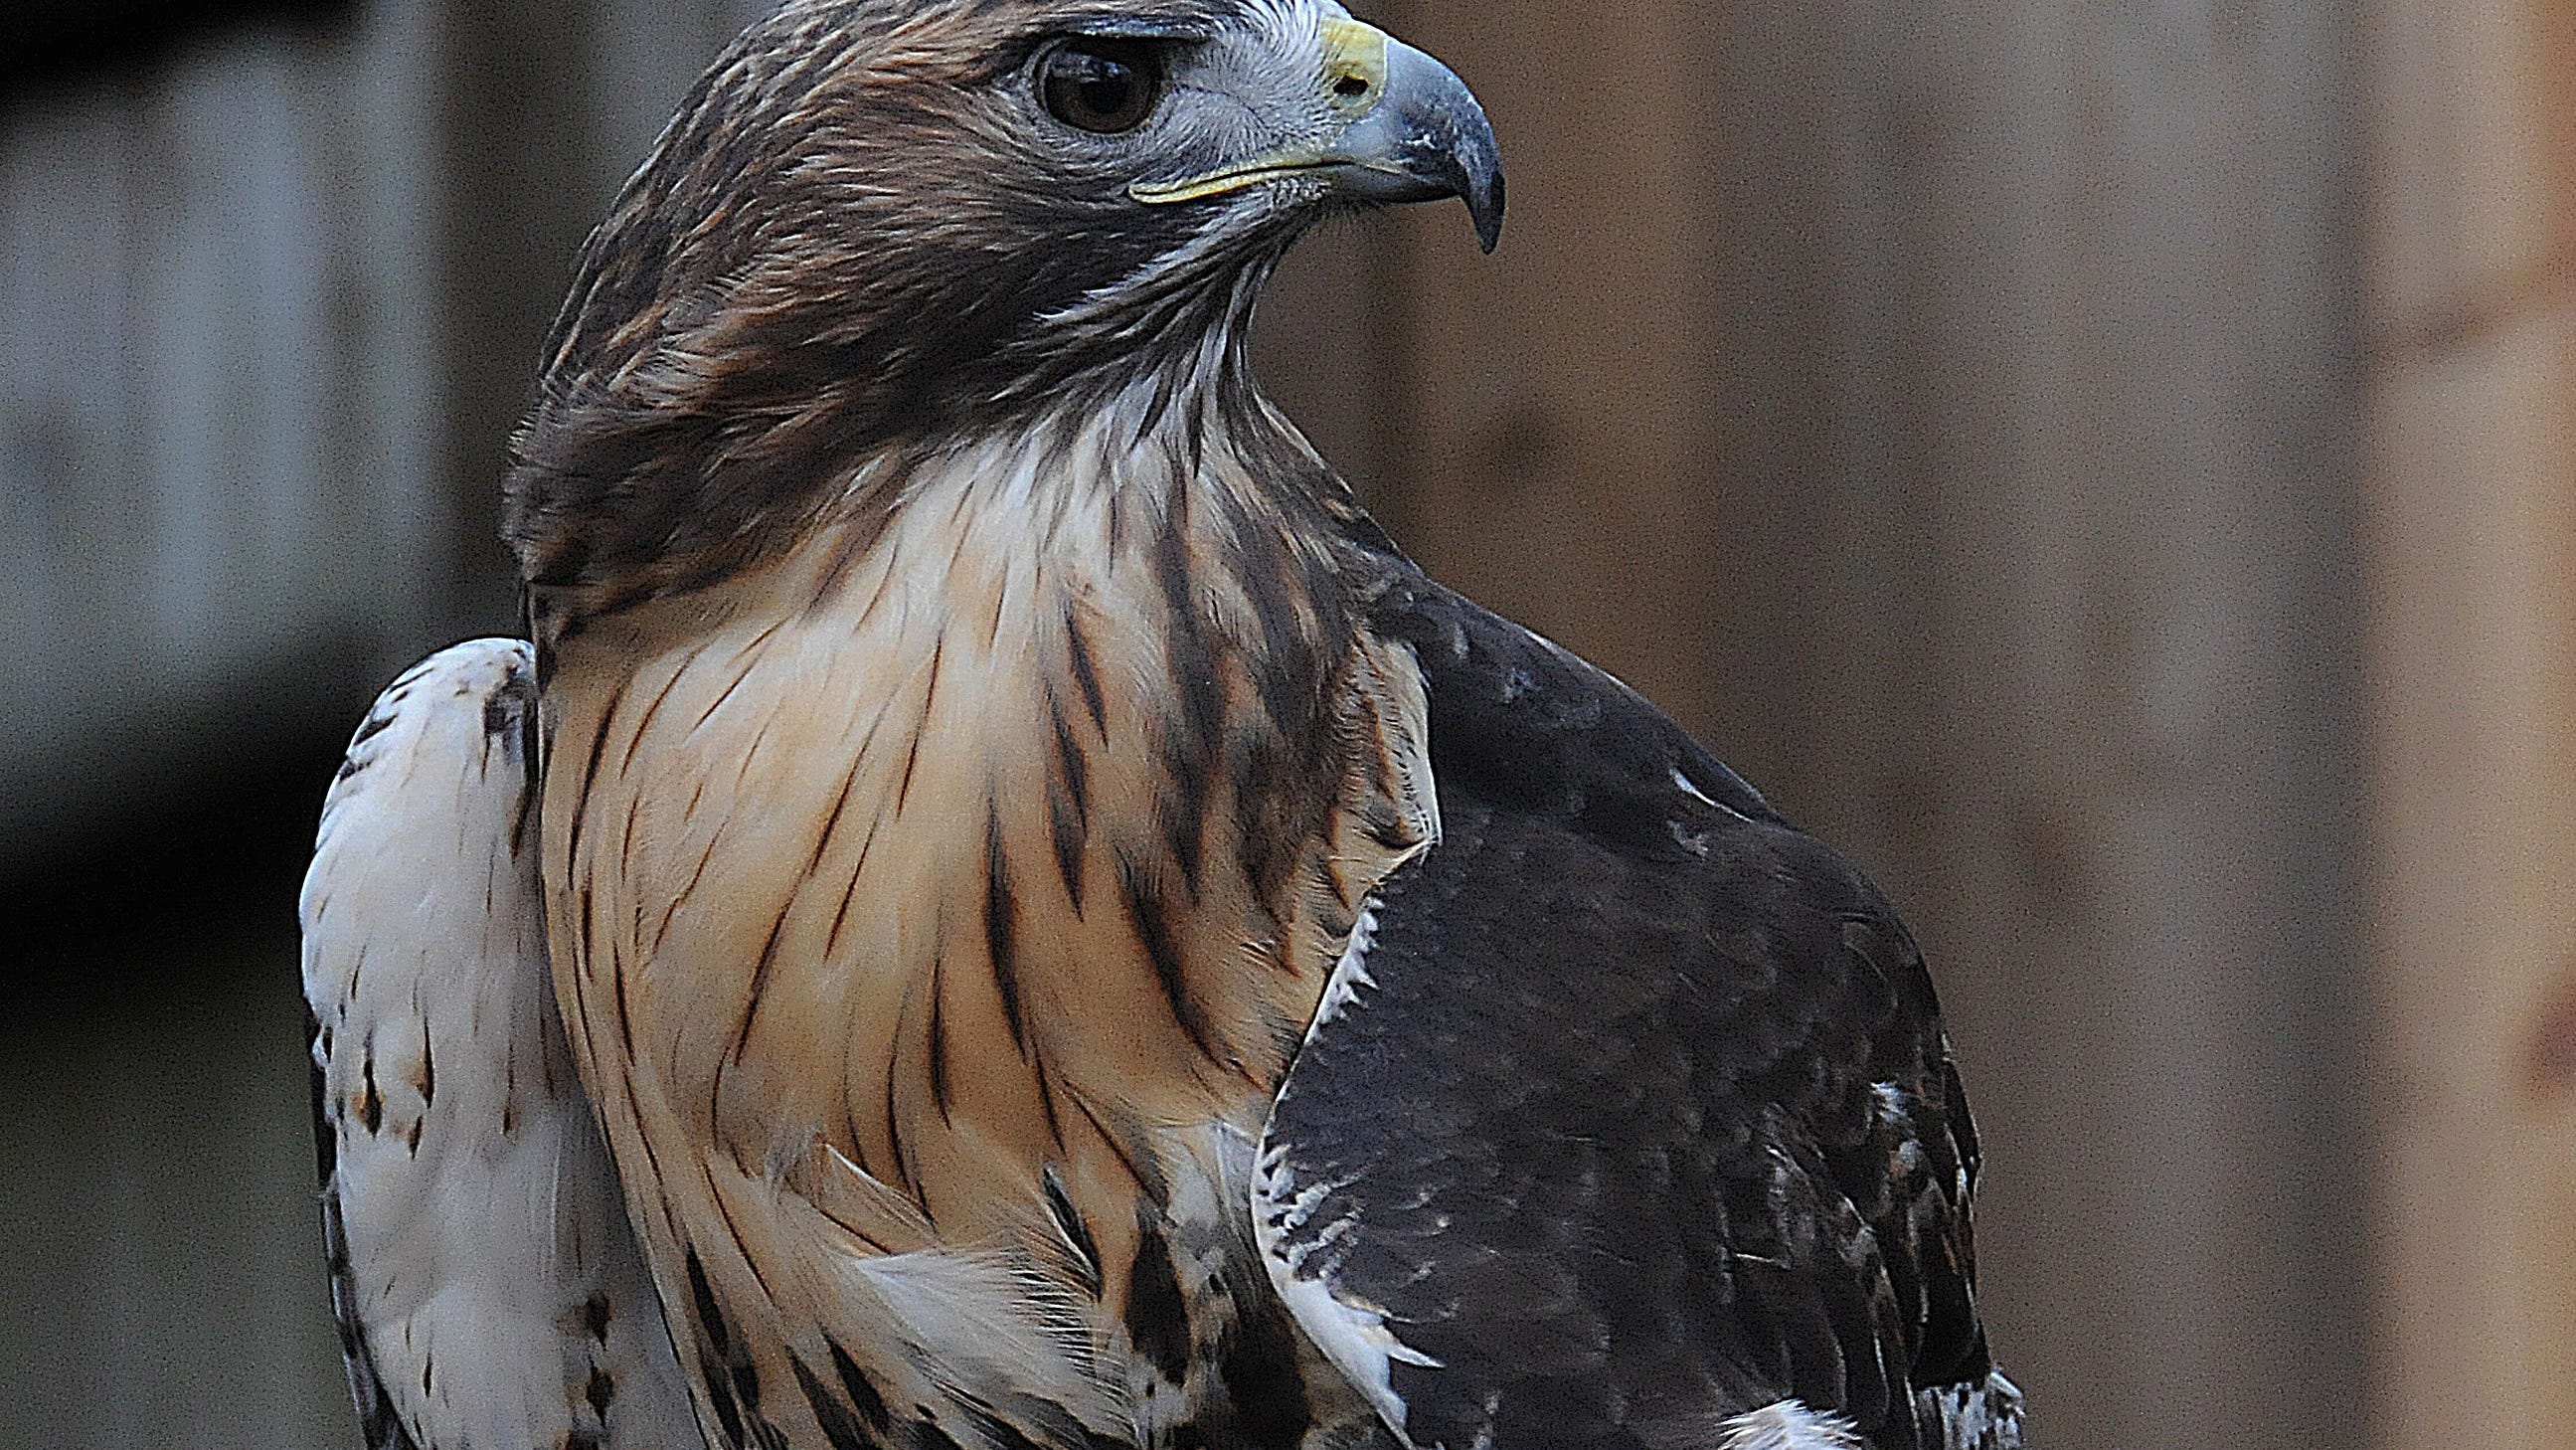 Nature Center Notes Birds Of Prey In Wnc